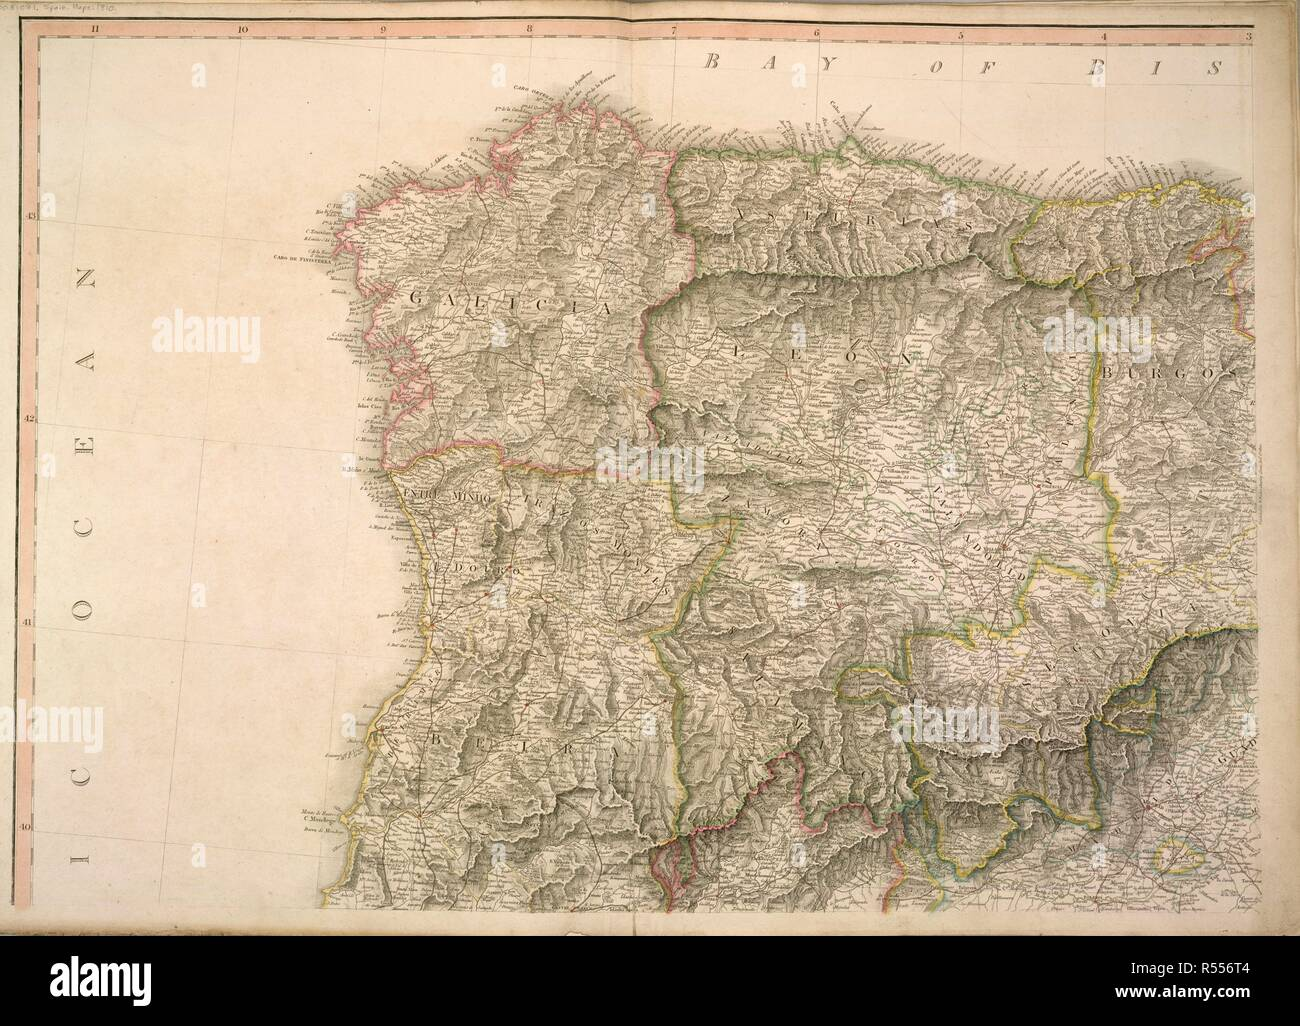 Map Of Spain Zamora.A Map Of Spain With The Following Place Names In Bold Galicia